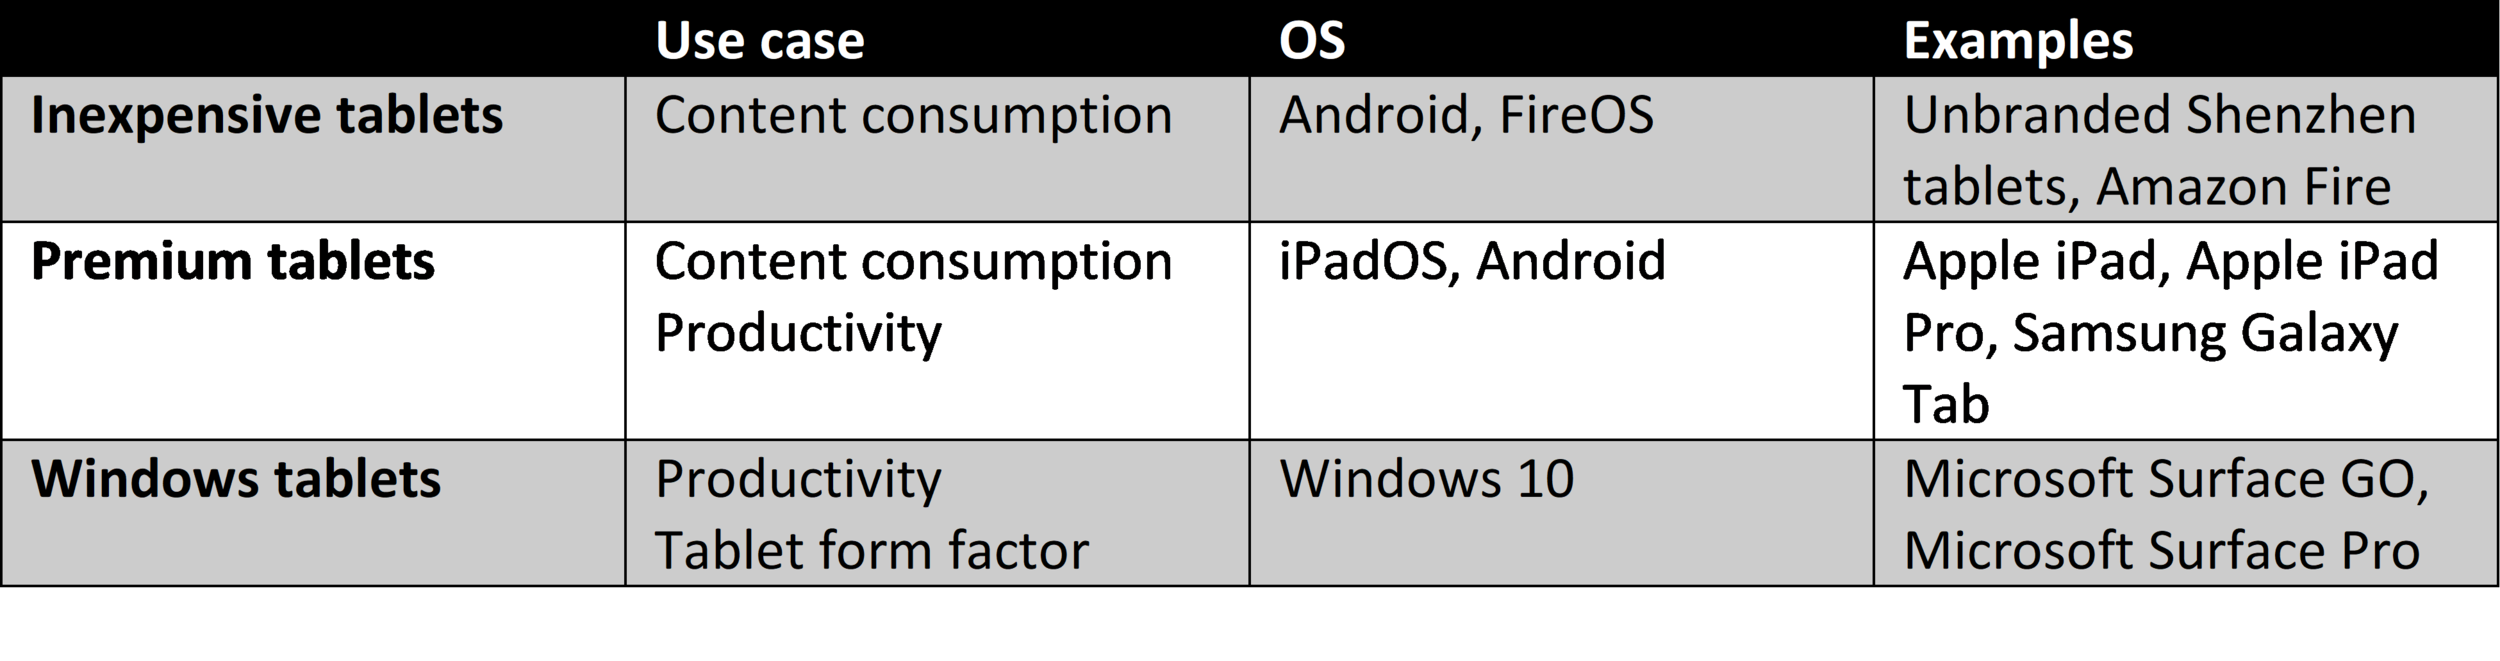 Tab S6 table.png